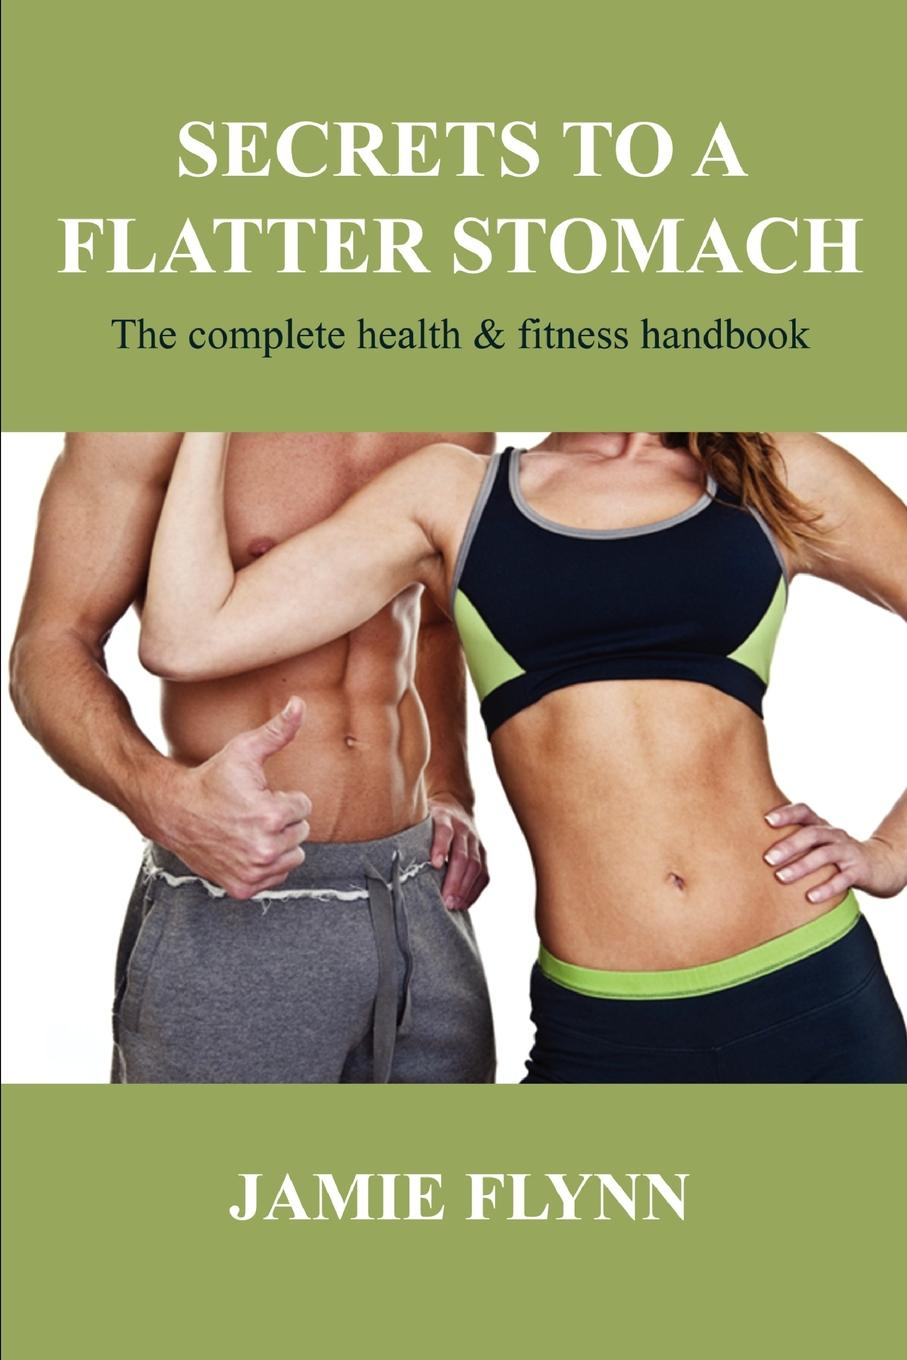 Jamie Flynn Secrets to a flatter stomach tracy alloway the new iq use your working memory to think stronger smarter faster